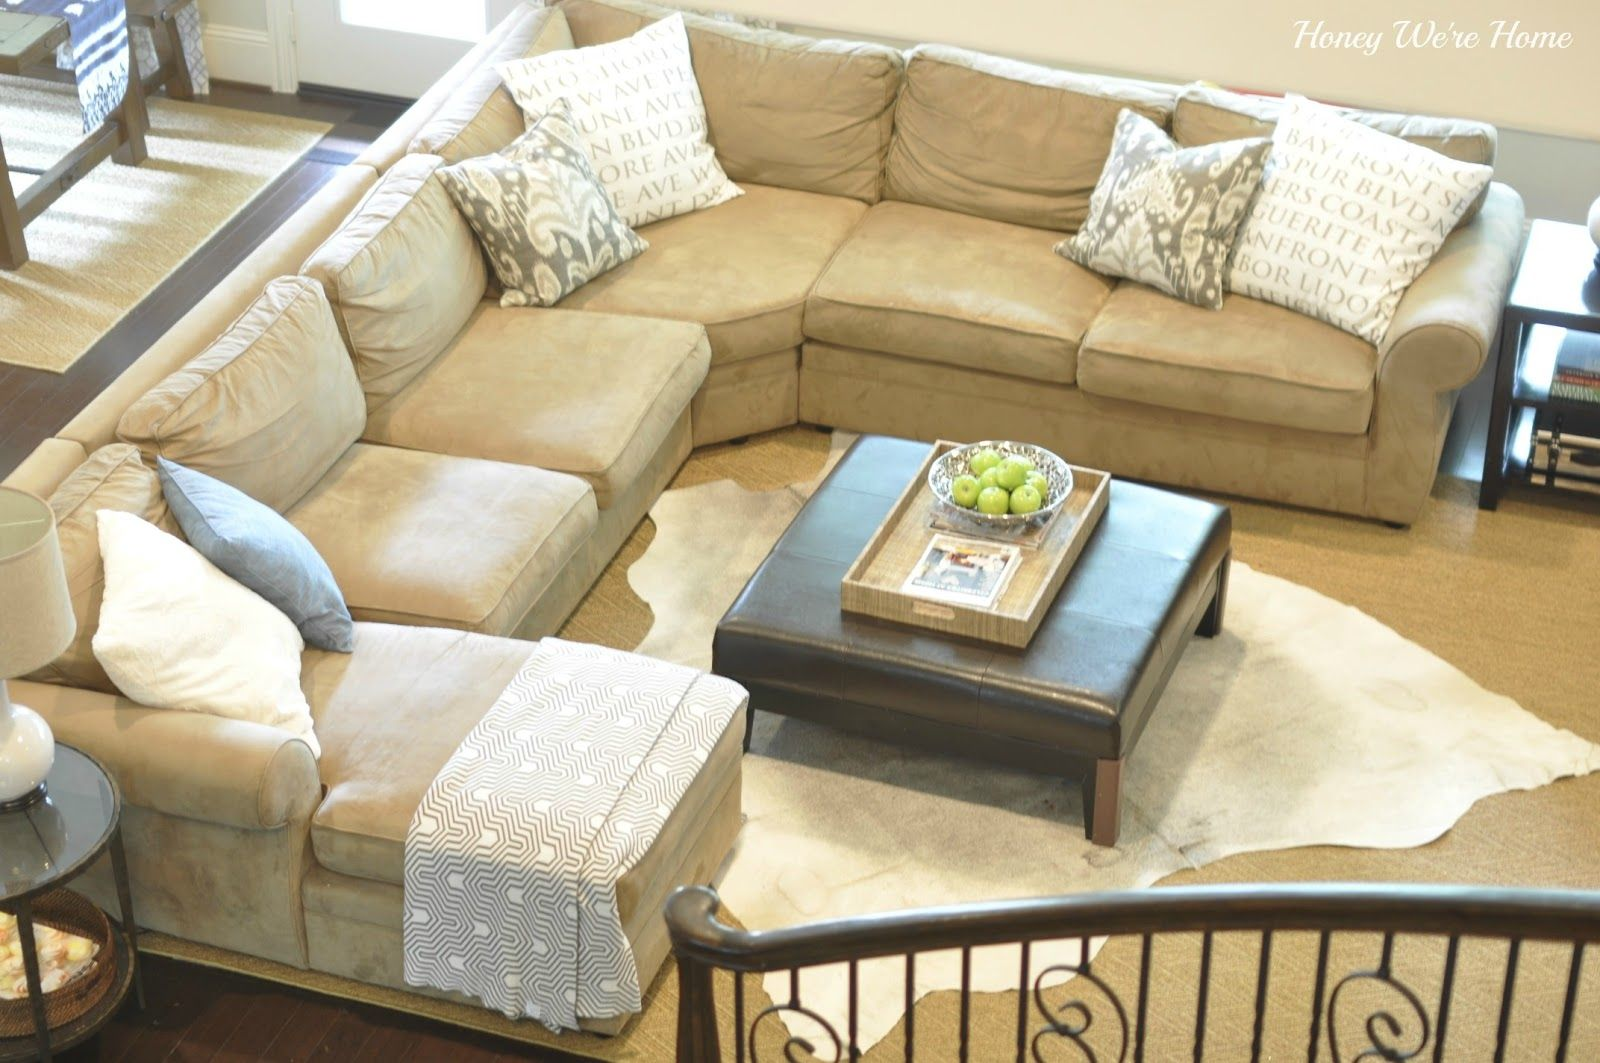 Sectional Couch Via Honeywe Rehome Living Room Rug Placement Home Rugs In Living Room